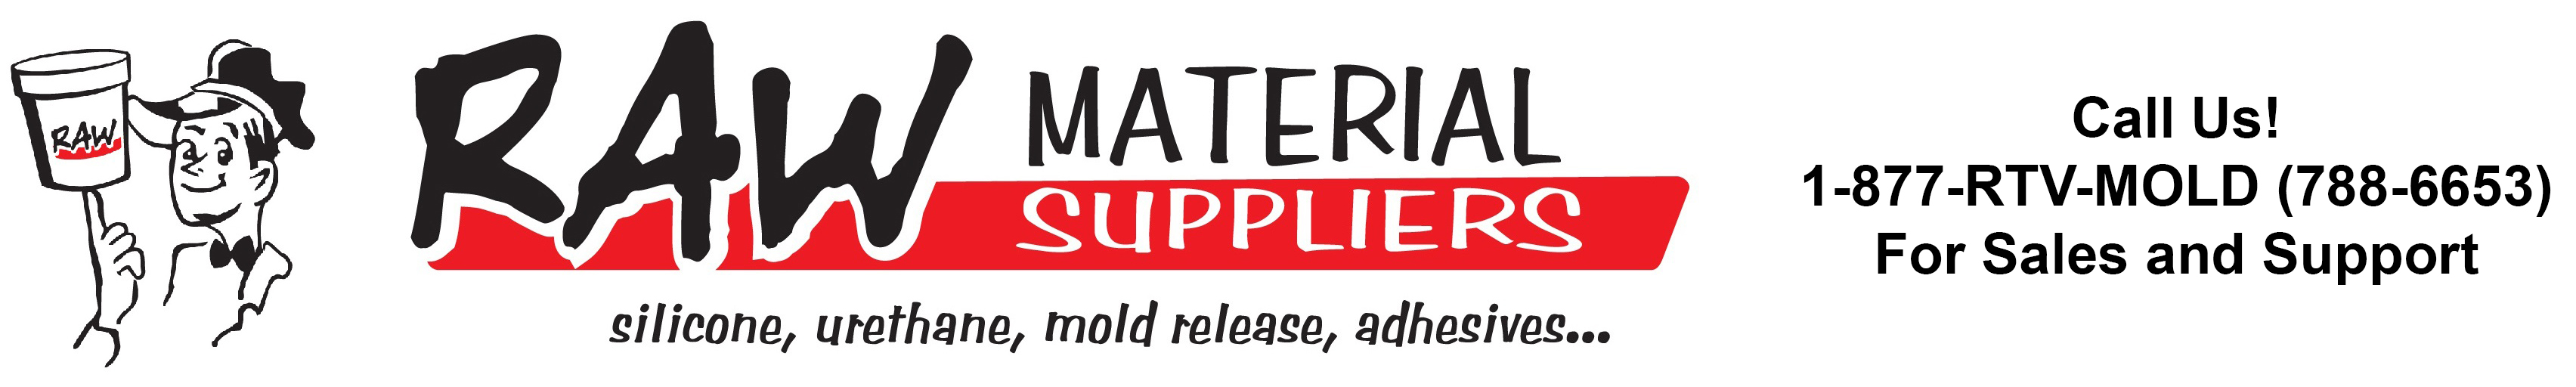 Raw Material Suppliers